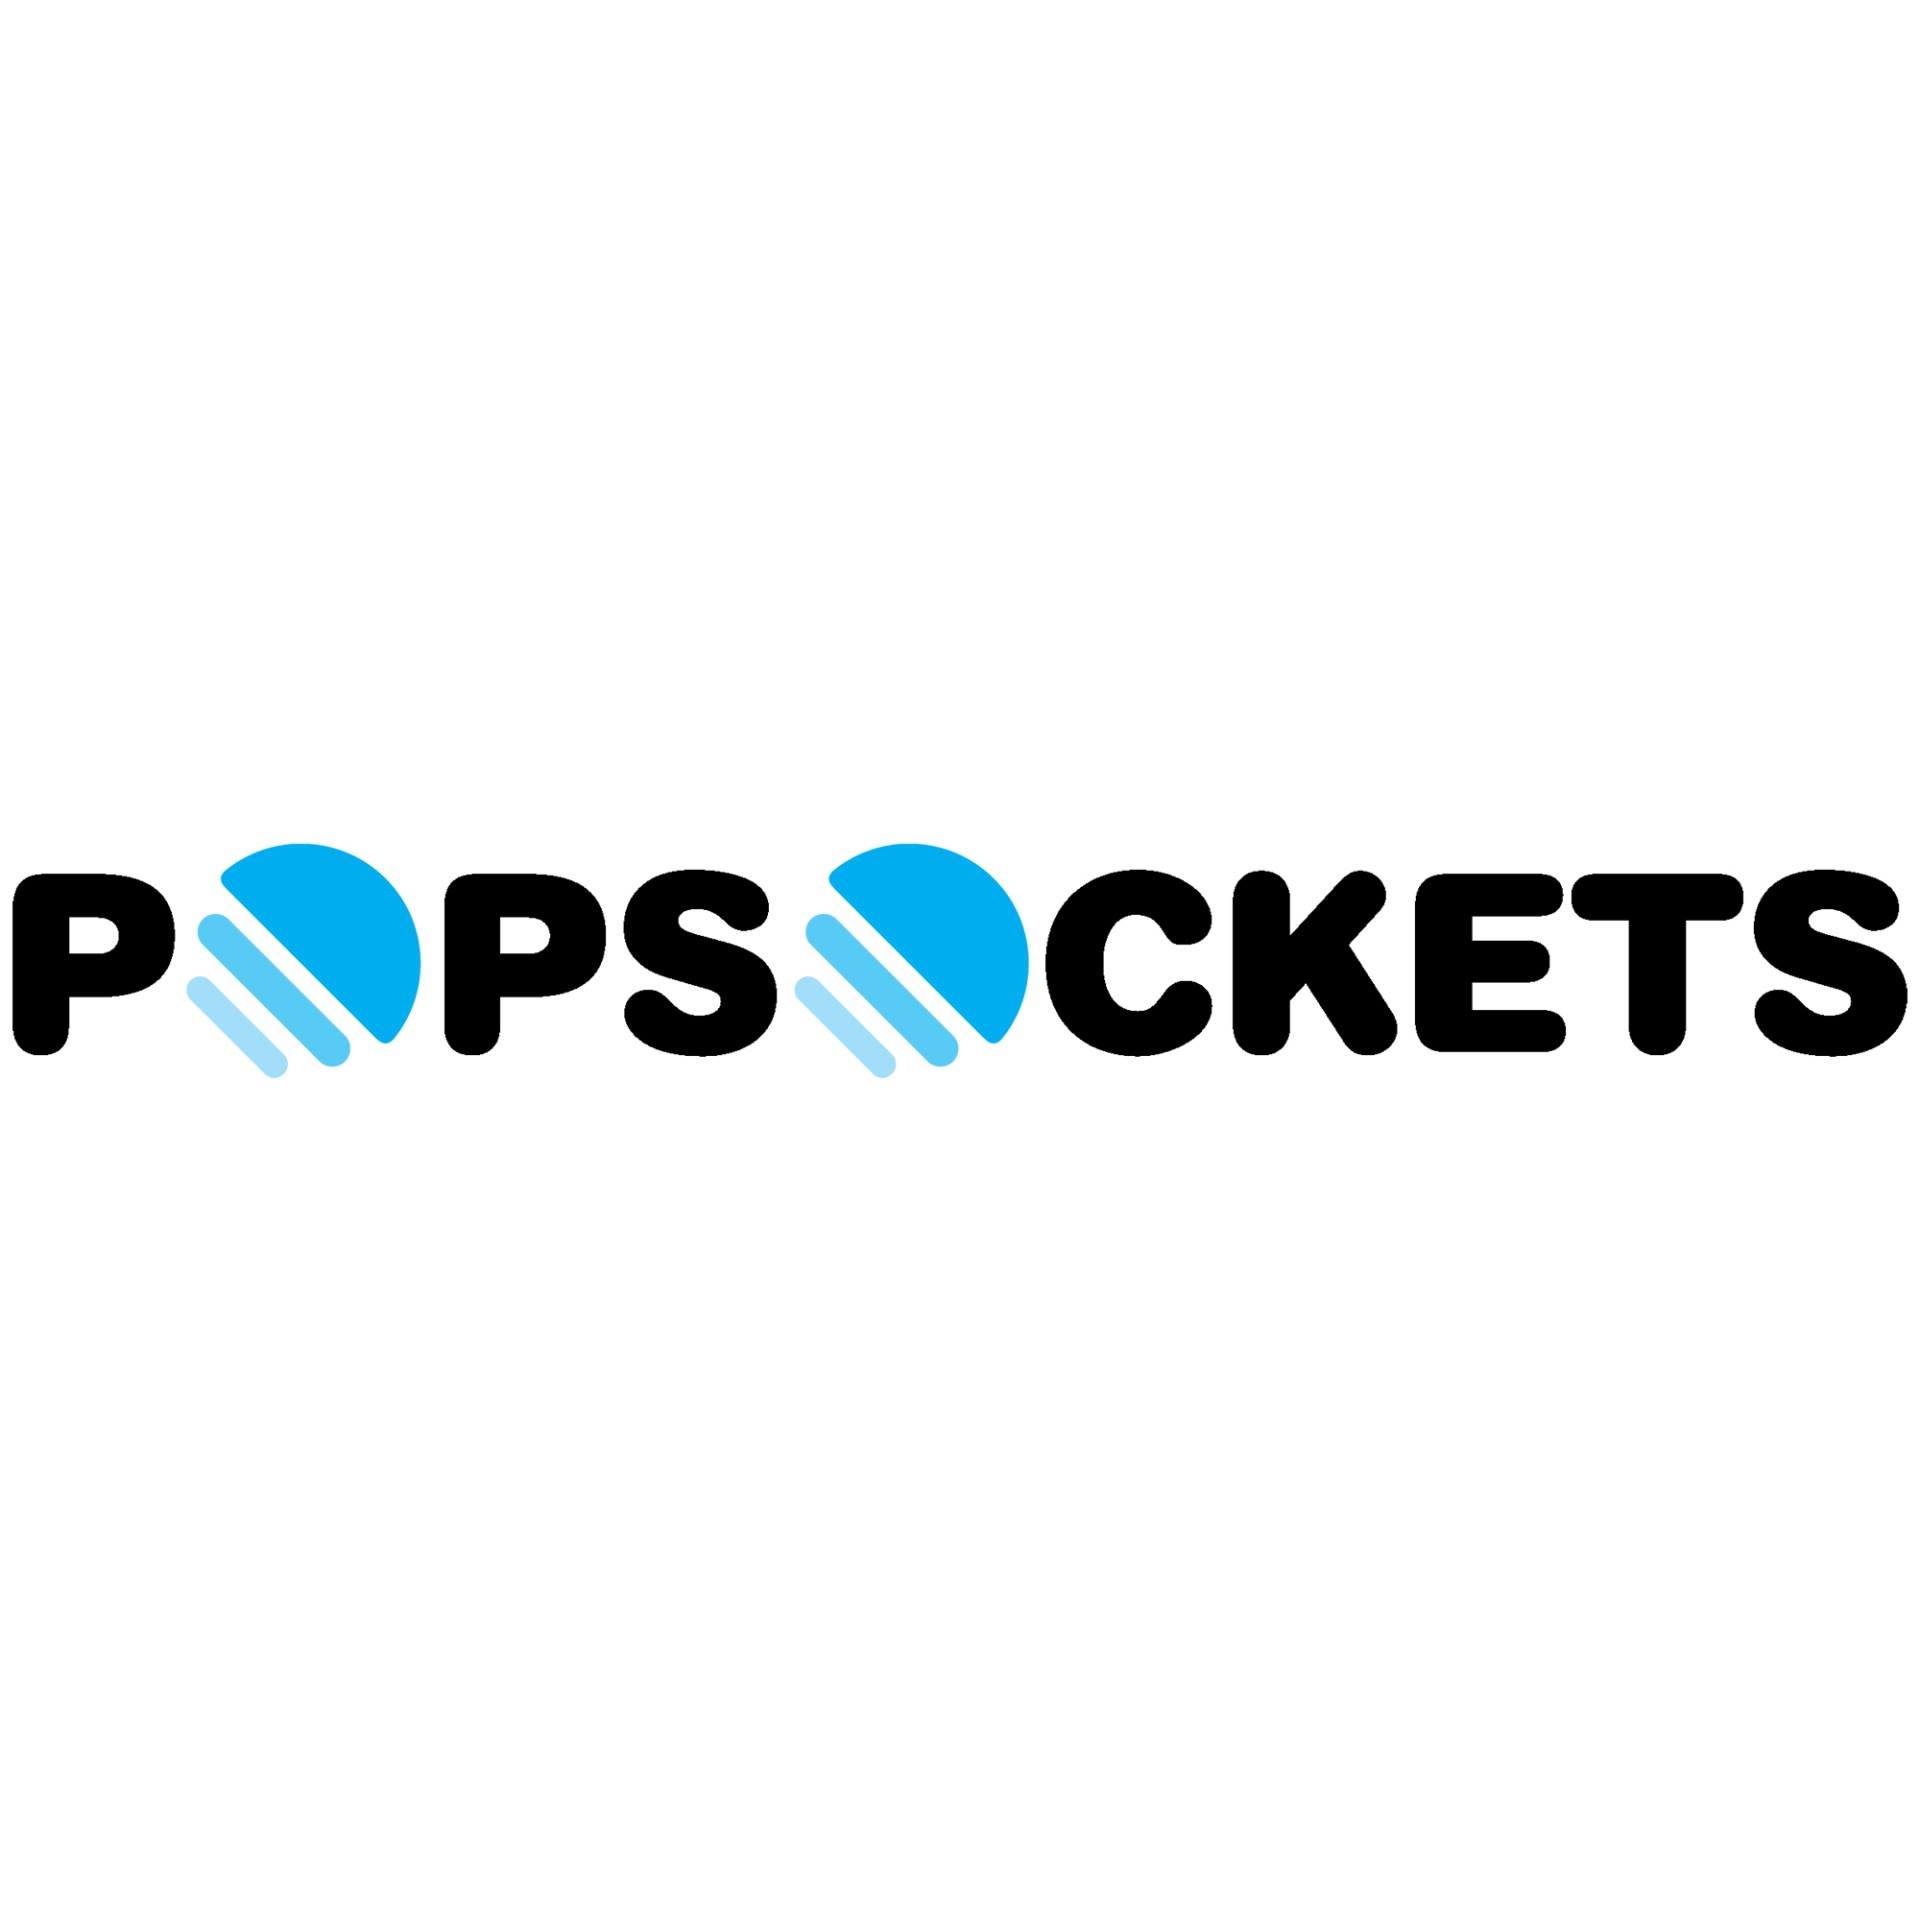 PopSockets Official